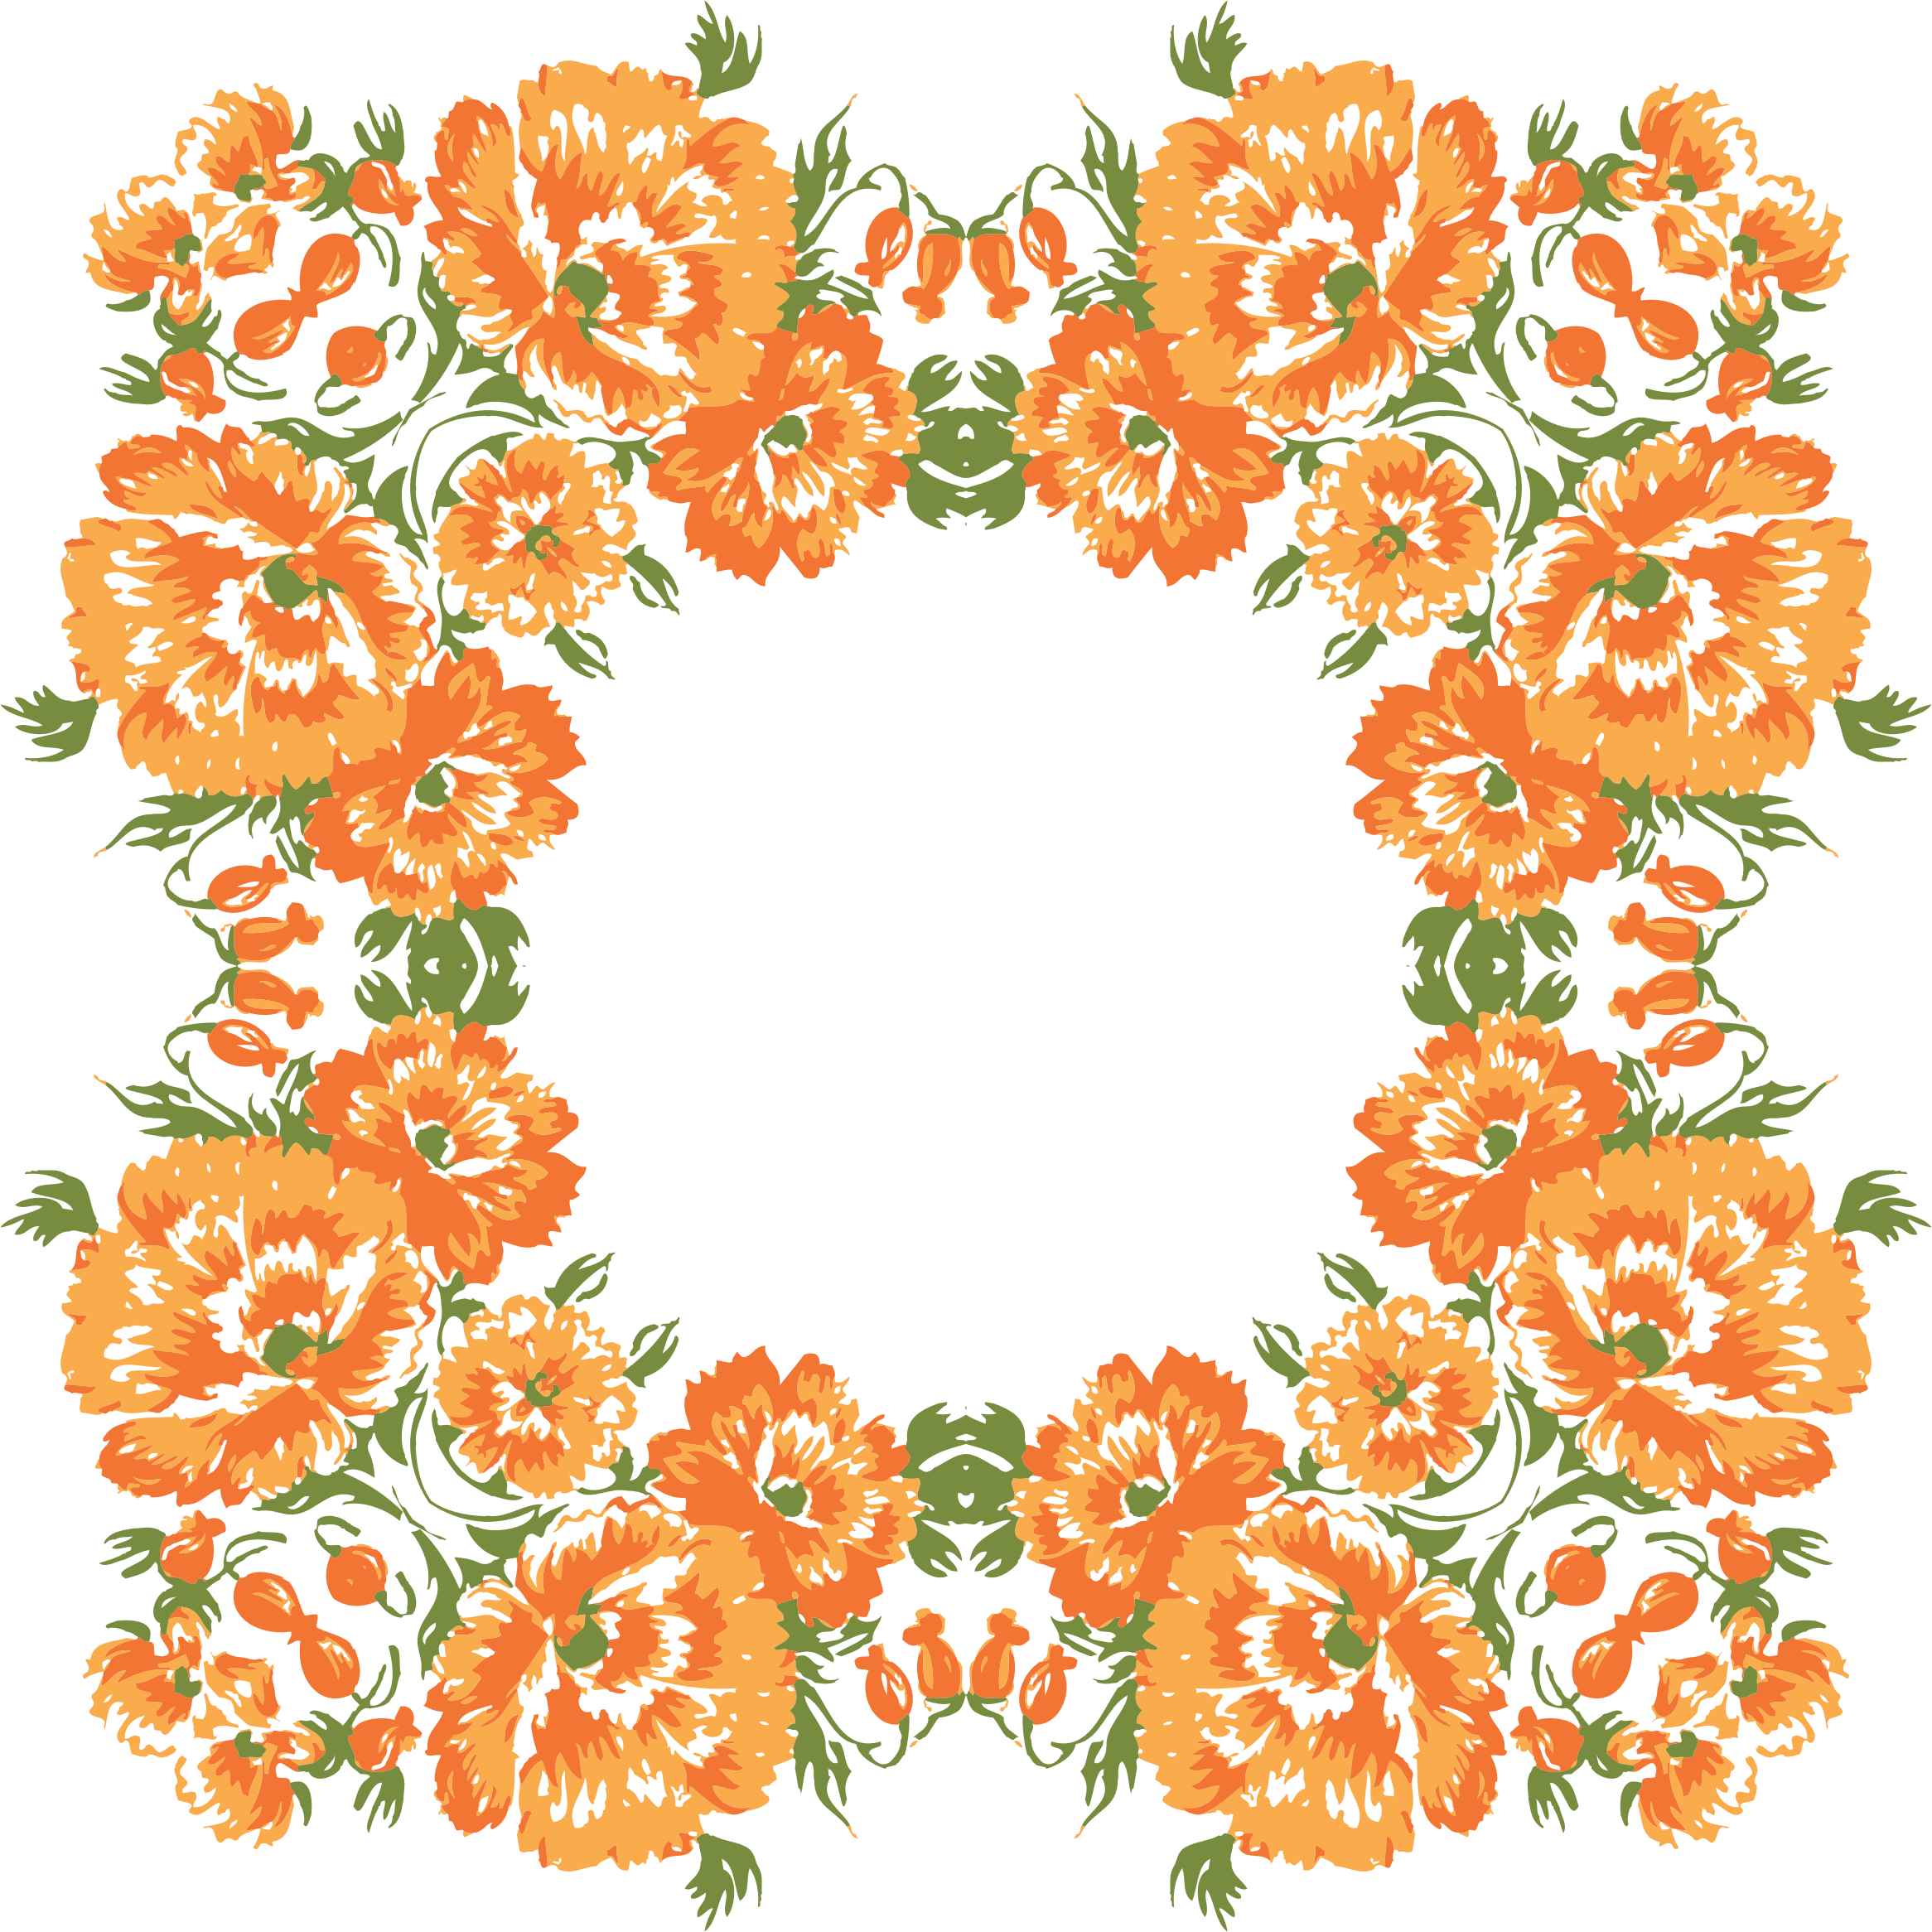 Flower wreath clipart. Floral frame big image